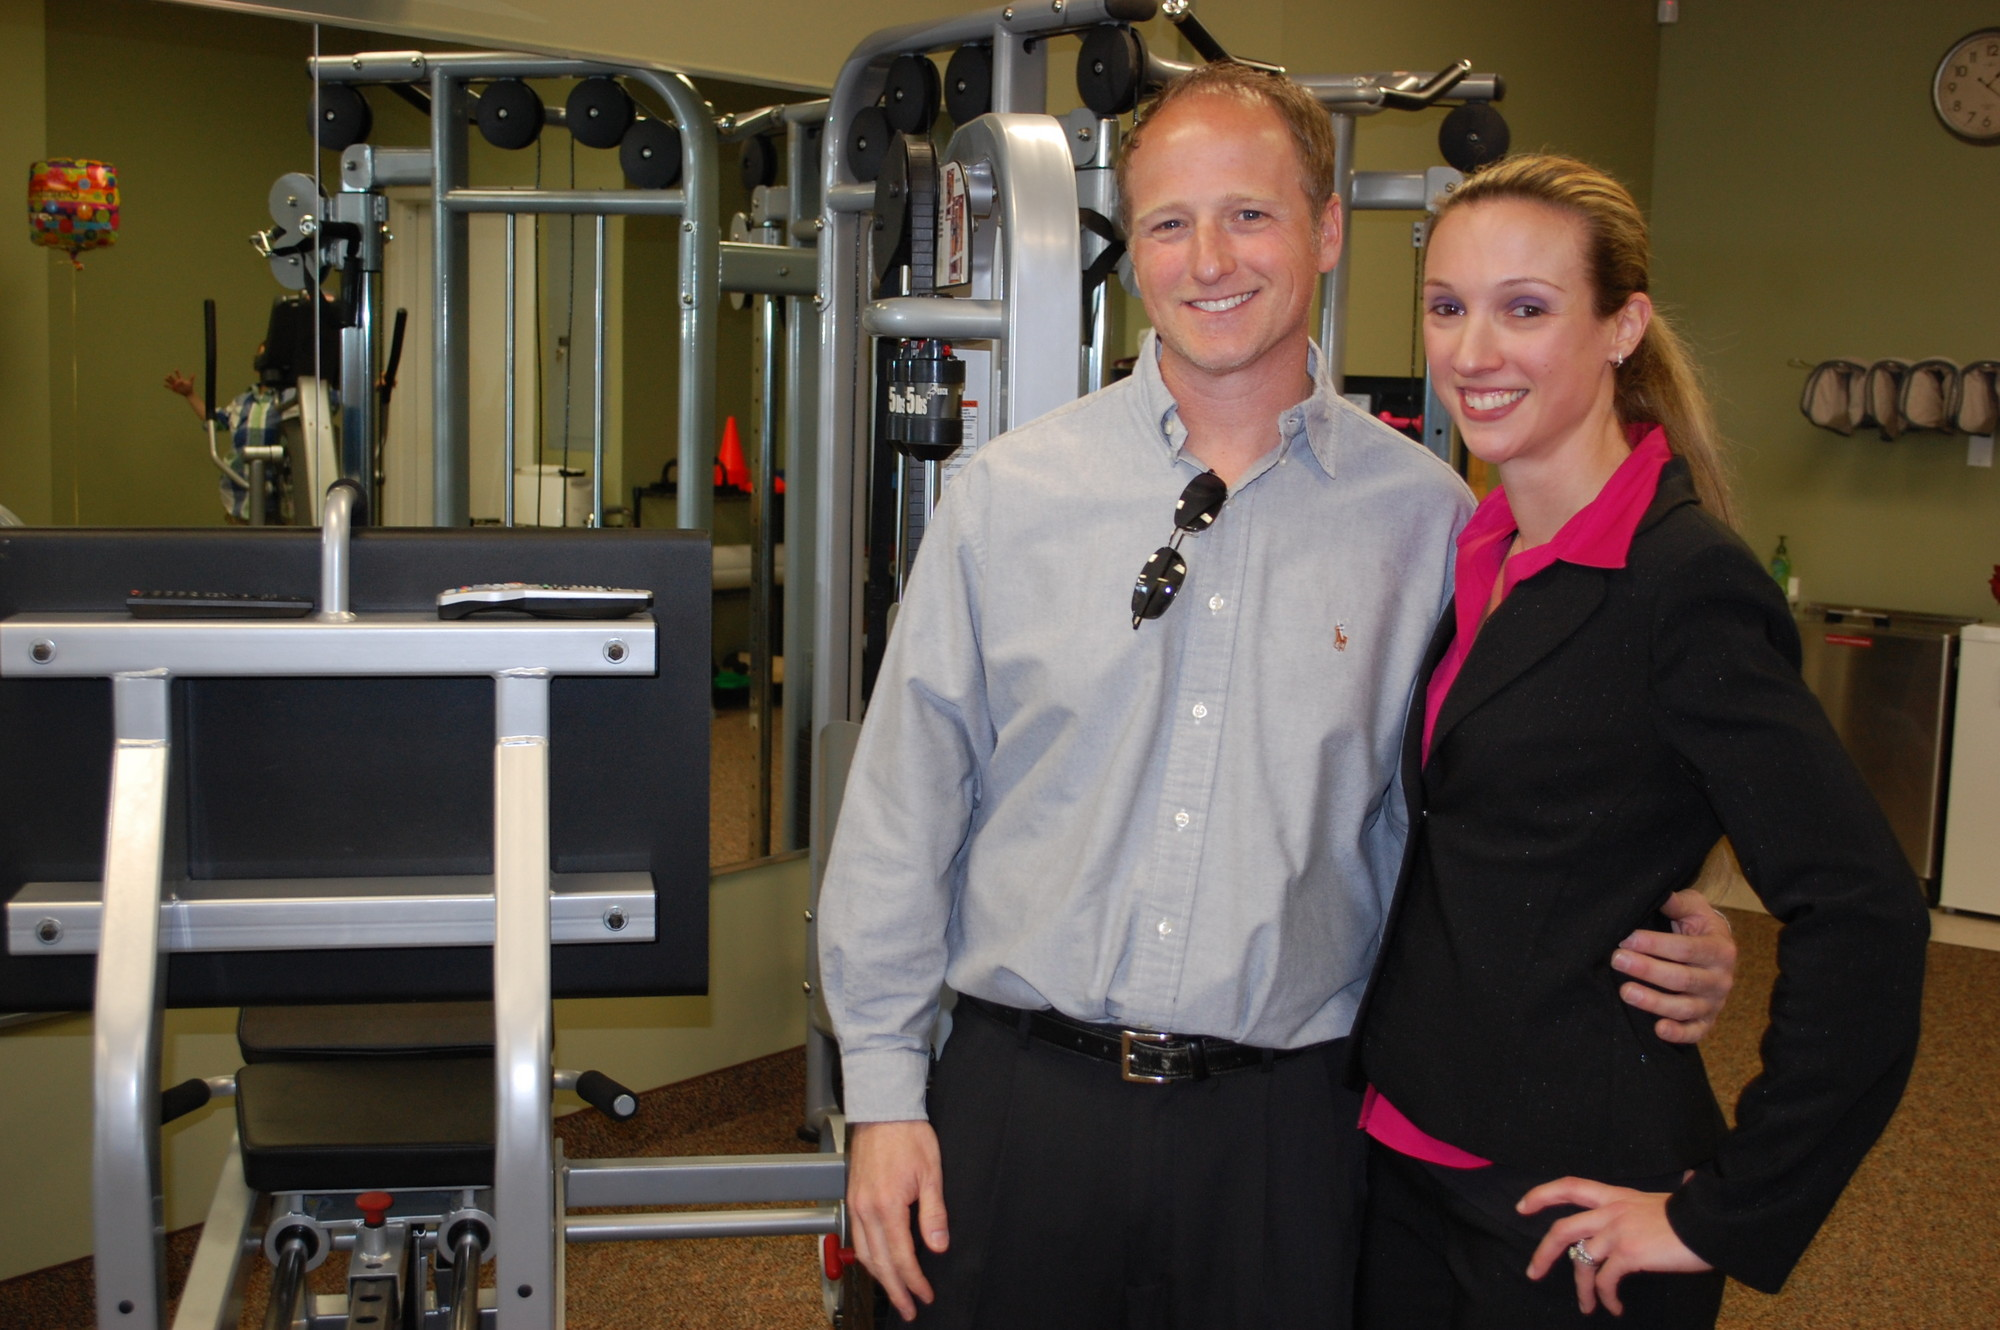 Michael Settanni and Leigh-Ann Edison are the owners of Paramount, which boasts state-of-the-art equipment and personal attention for patients.